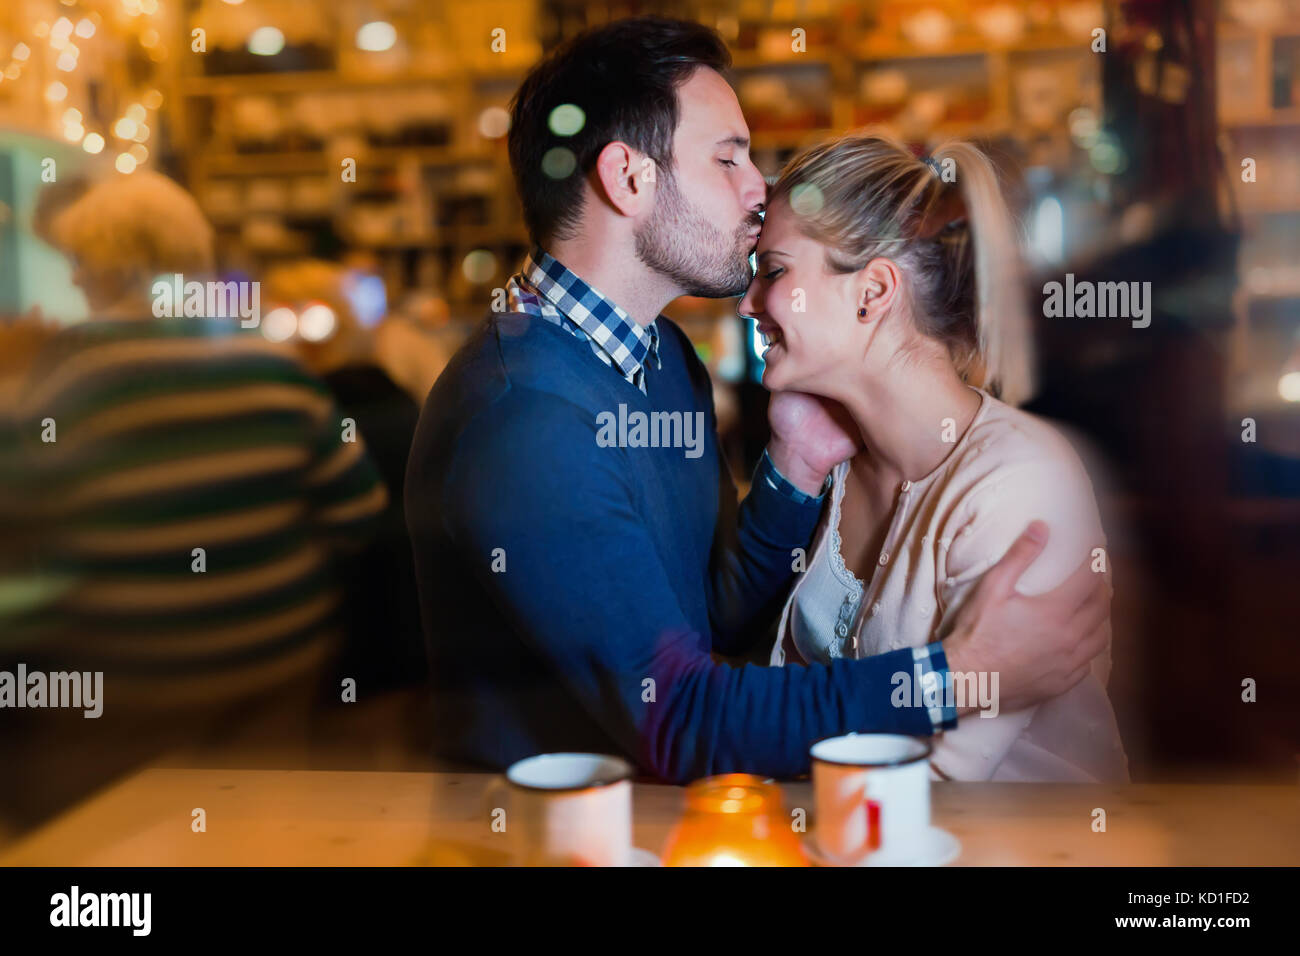 Happy couple kissing at bar and having date - Stock Image